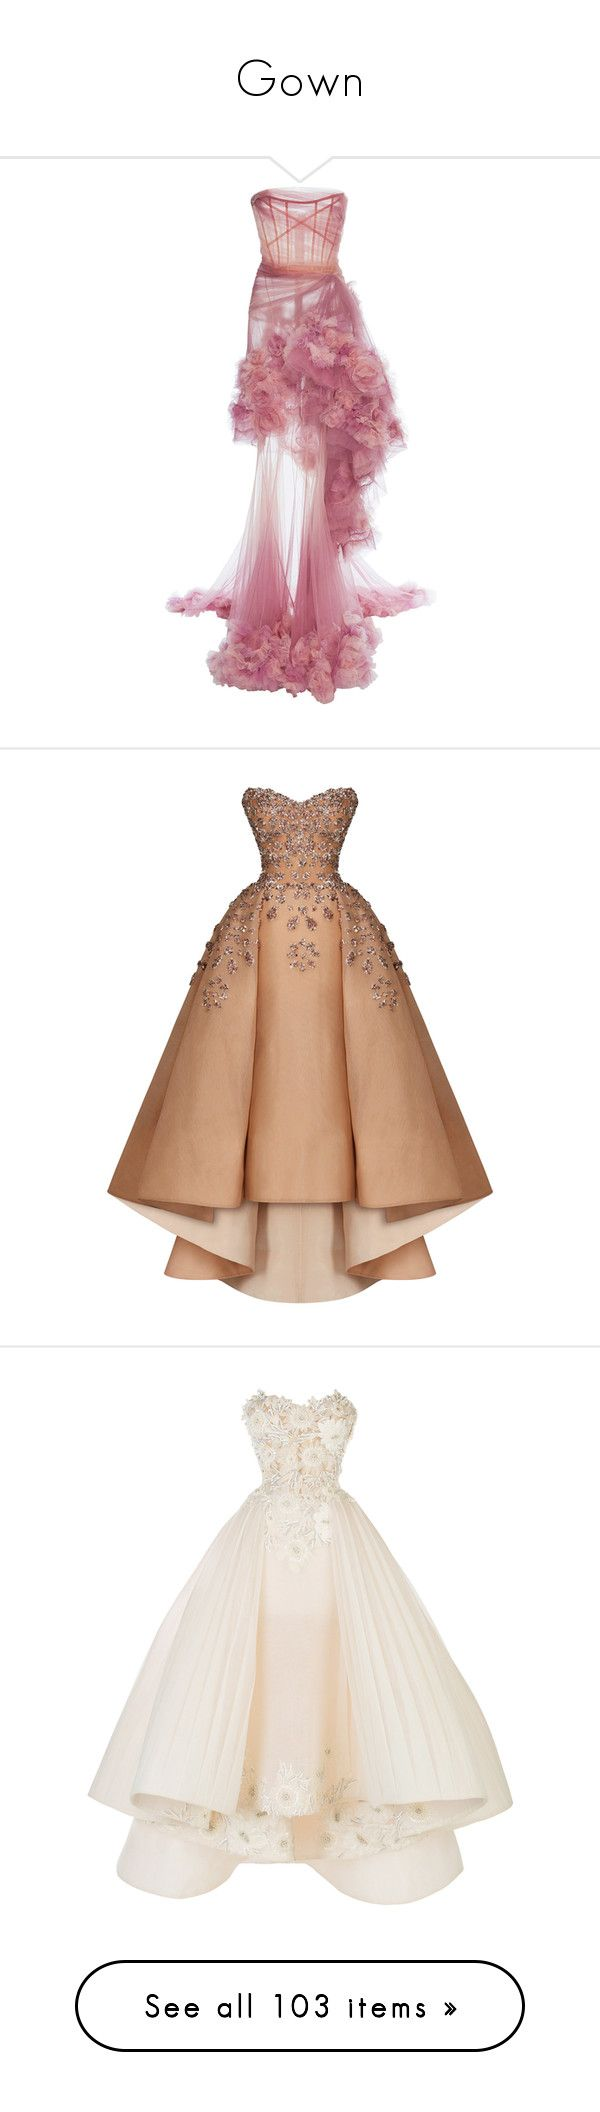 """Gown"" by thebadkids ❤ liked on Polyvore featuring dresses, gowns, pink, marchesa, long dresses, marchesa gowns, pink ball gown, floral evening gown, floral ball gown and pink gown"